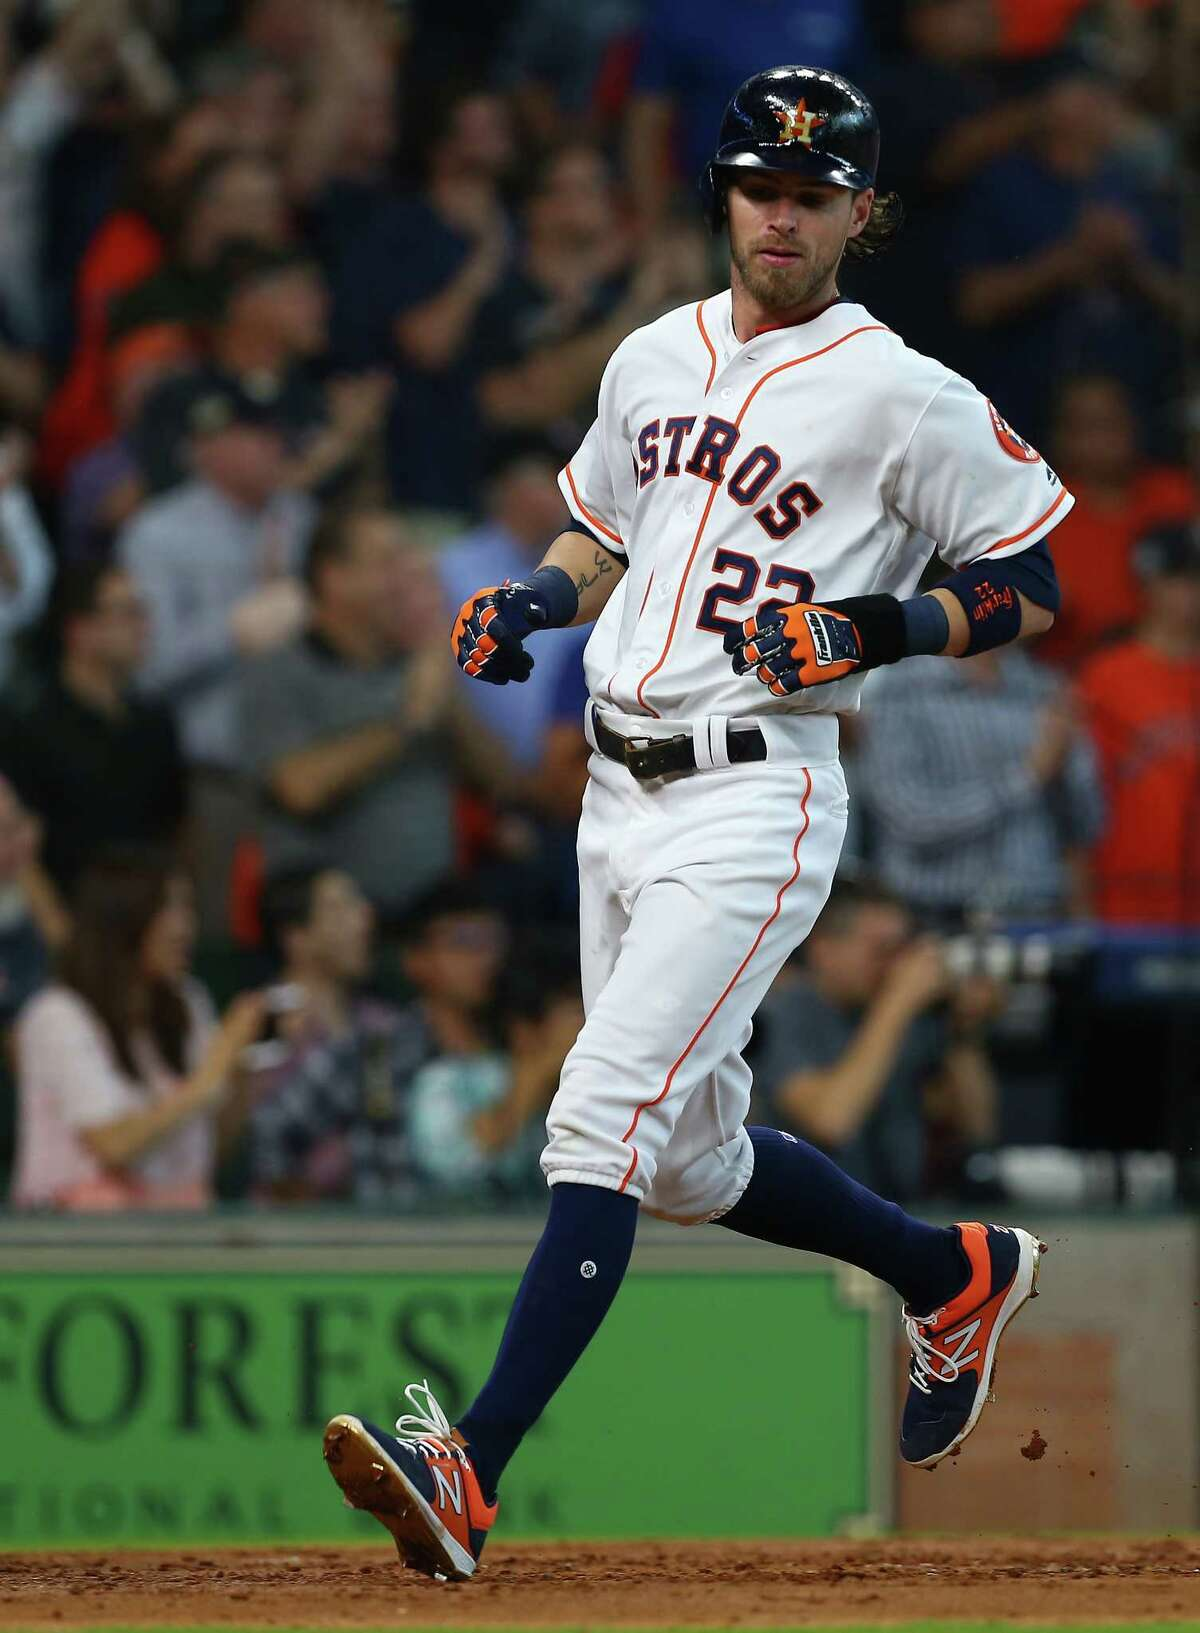 Houston Astros right fielder Josh Reddick (22) scores off Alex Bregman's three-RBI double during the fourth inning of an MLB game against the Los Angeles Angels at Minute Maid Park Wednesday, April 25, 2018, in Houston.